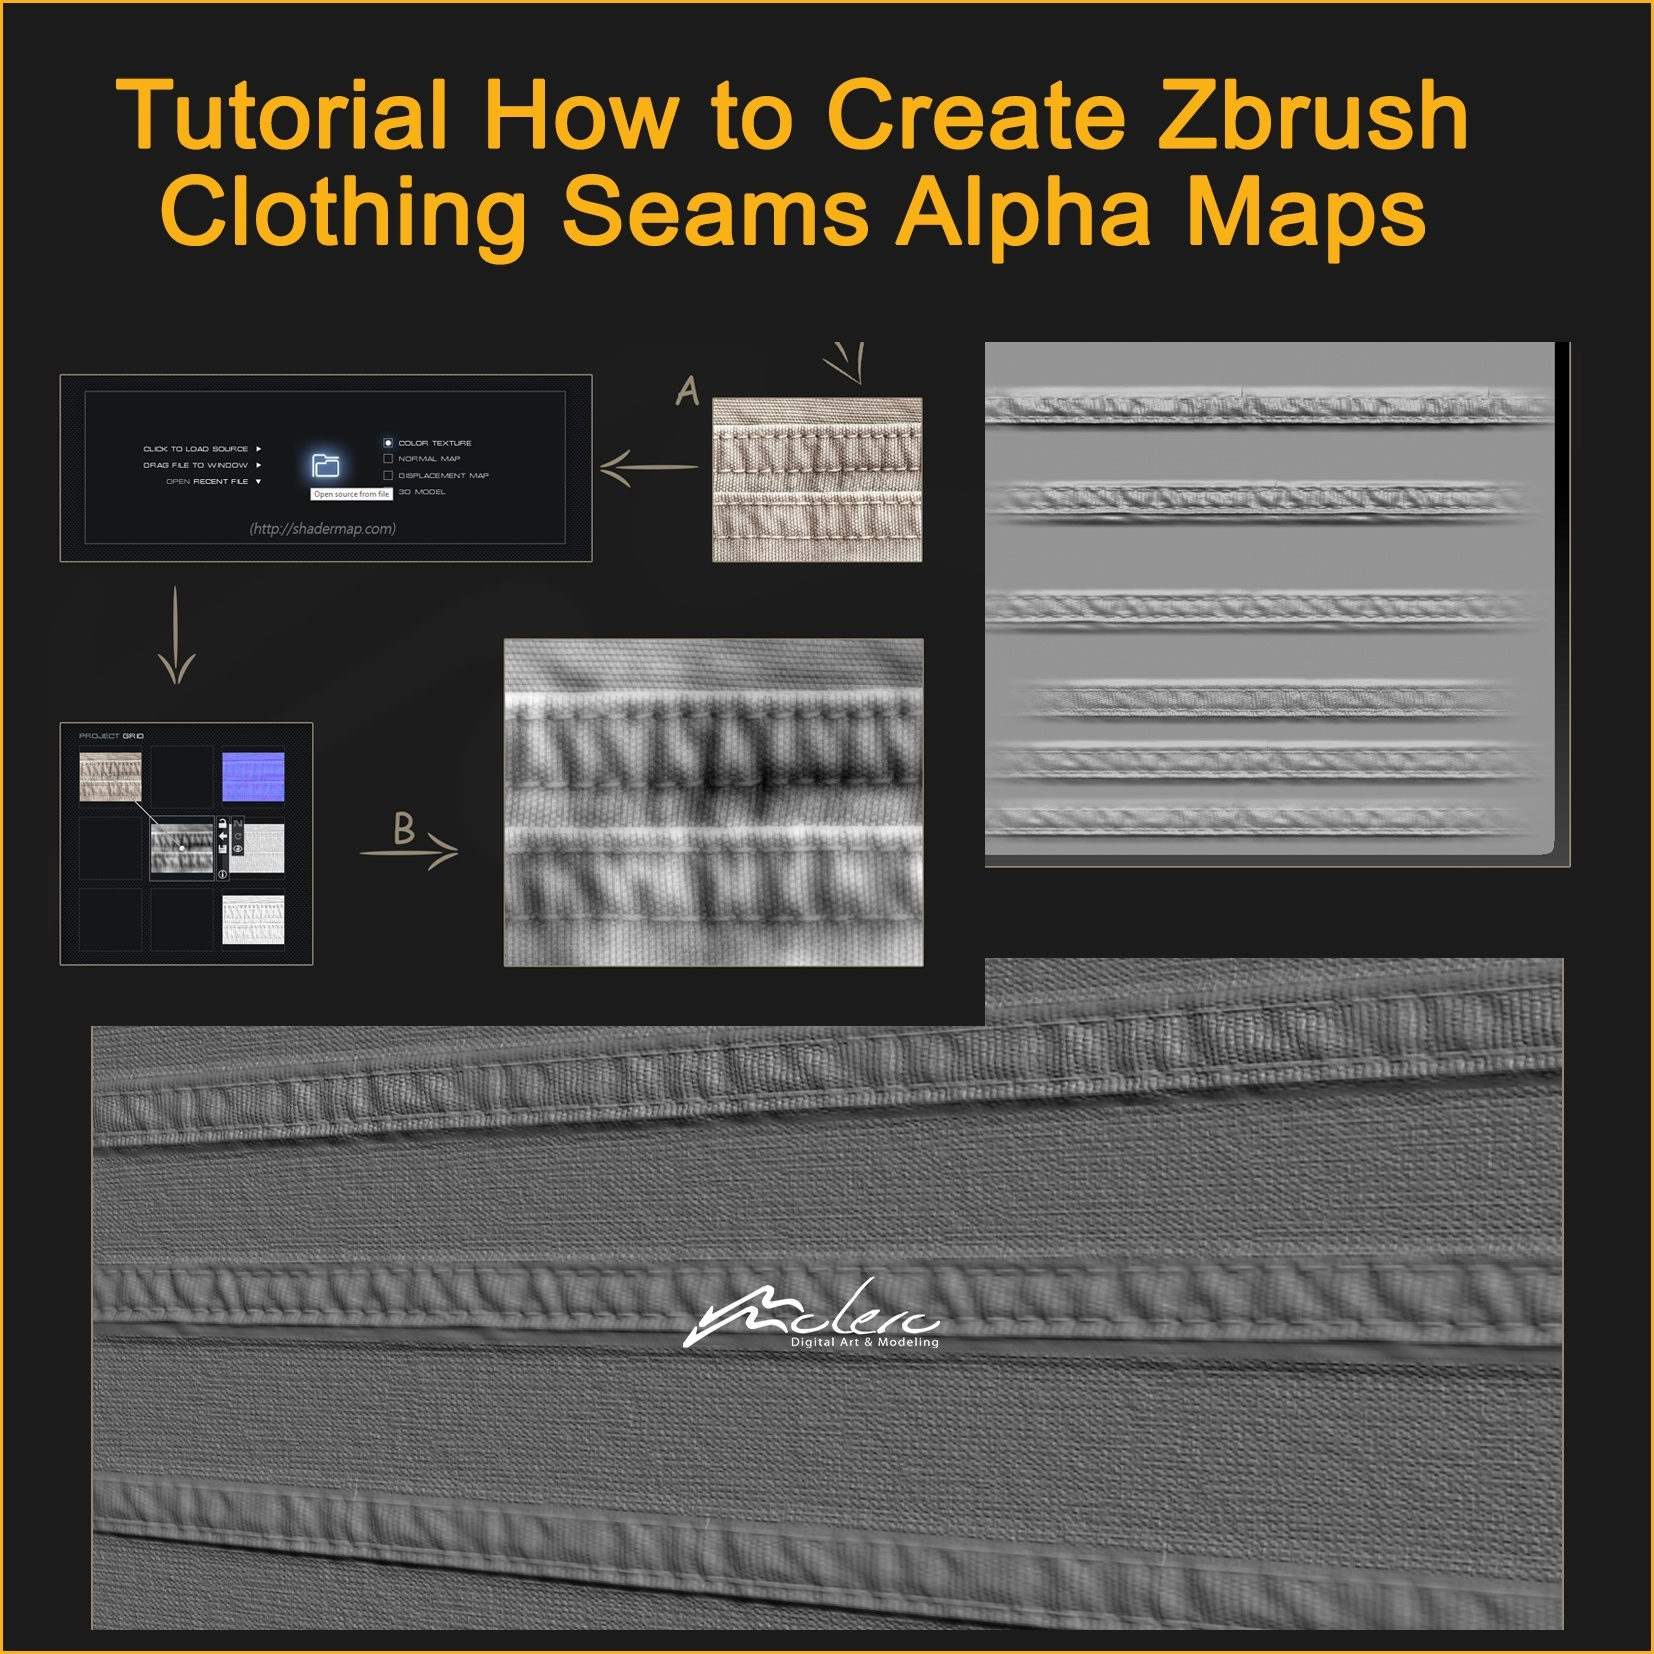 Free Tutorial How to Make ZBrush Clothing Seams Alpha Maps